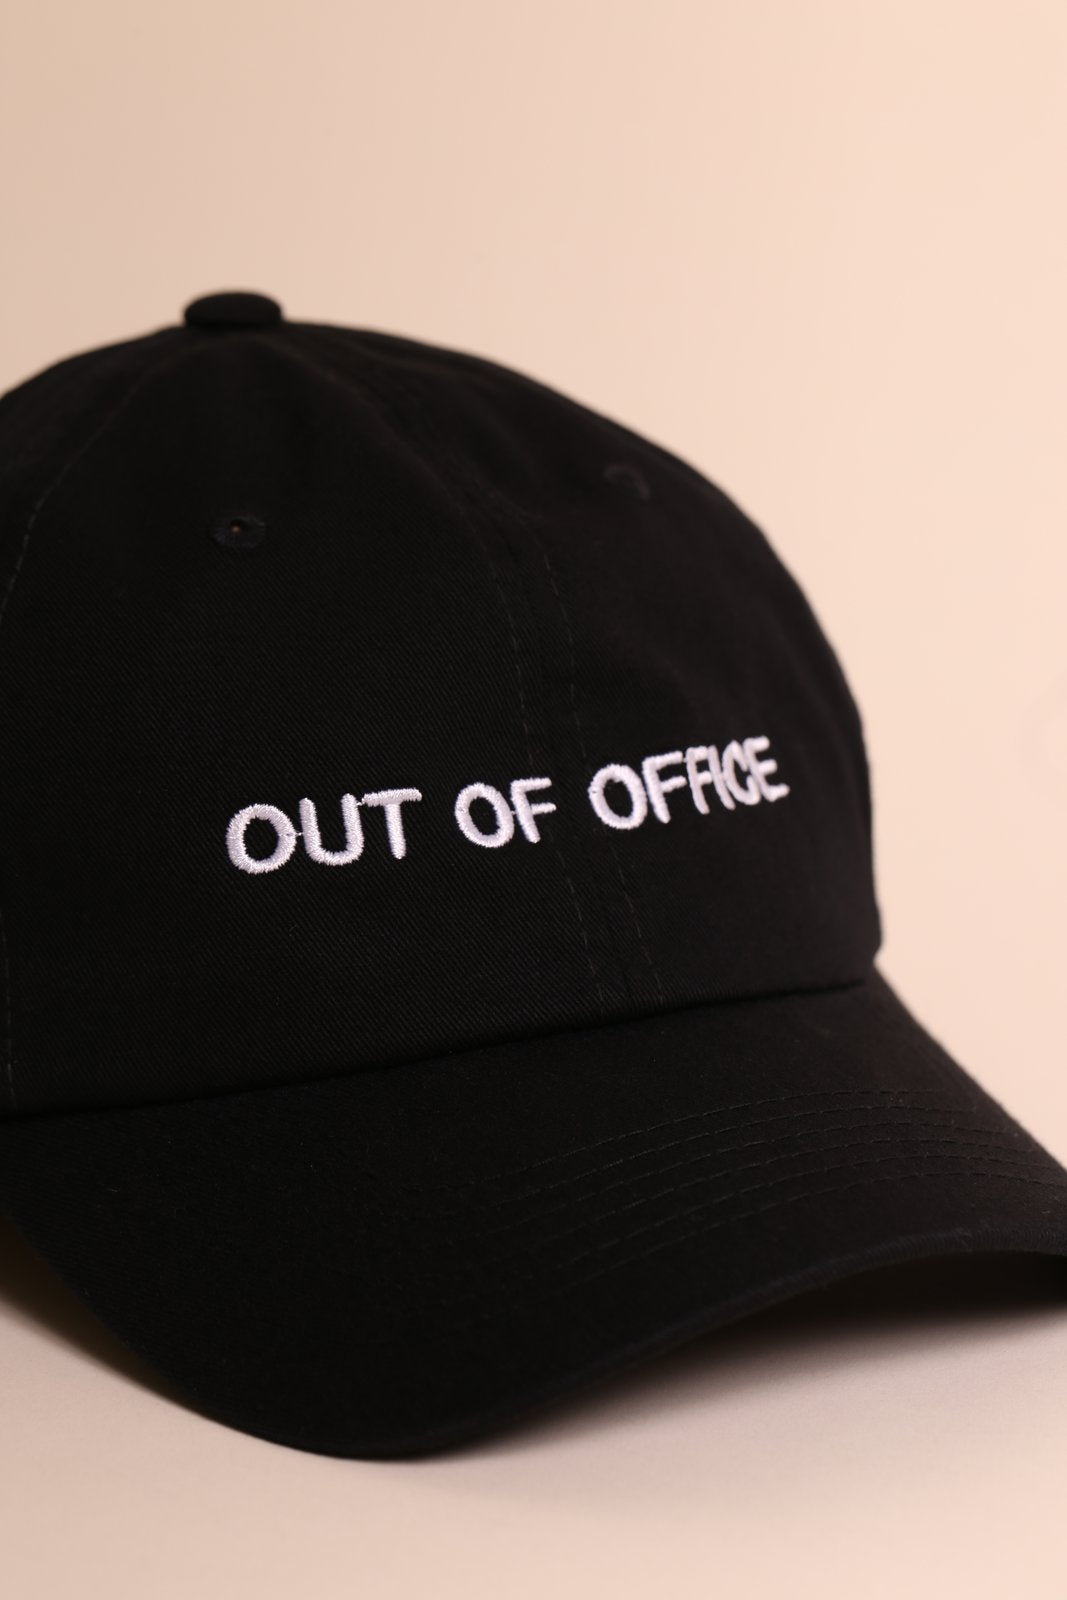 Out Of Office Hat - Black/White